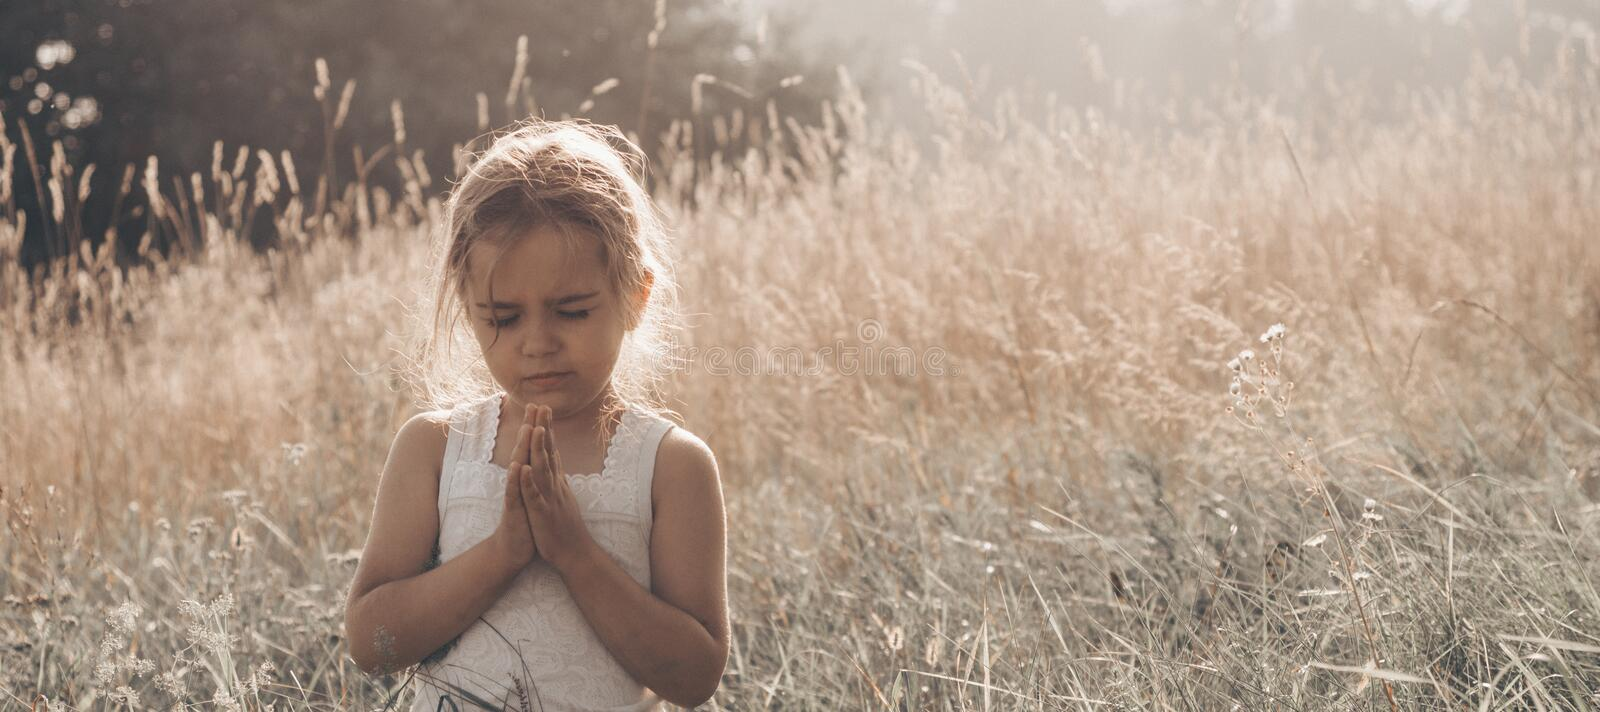 Little girl closed her eyes praying at sunset. Hands folded in prayer concept for faith, spirituality and religion. Hope, concept. royalty free stock image